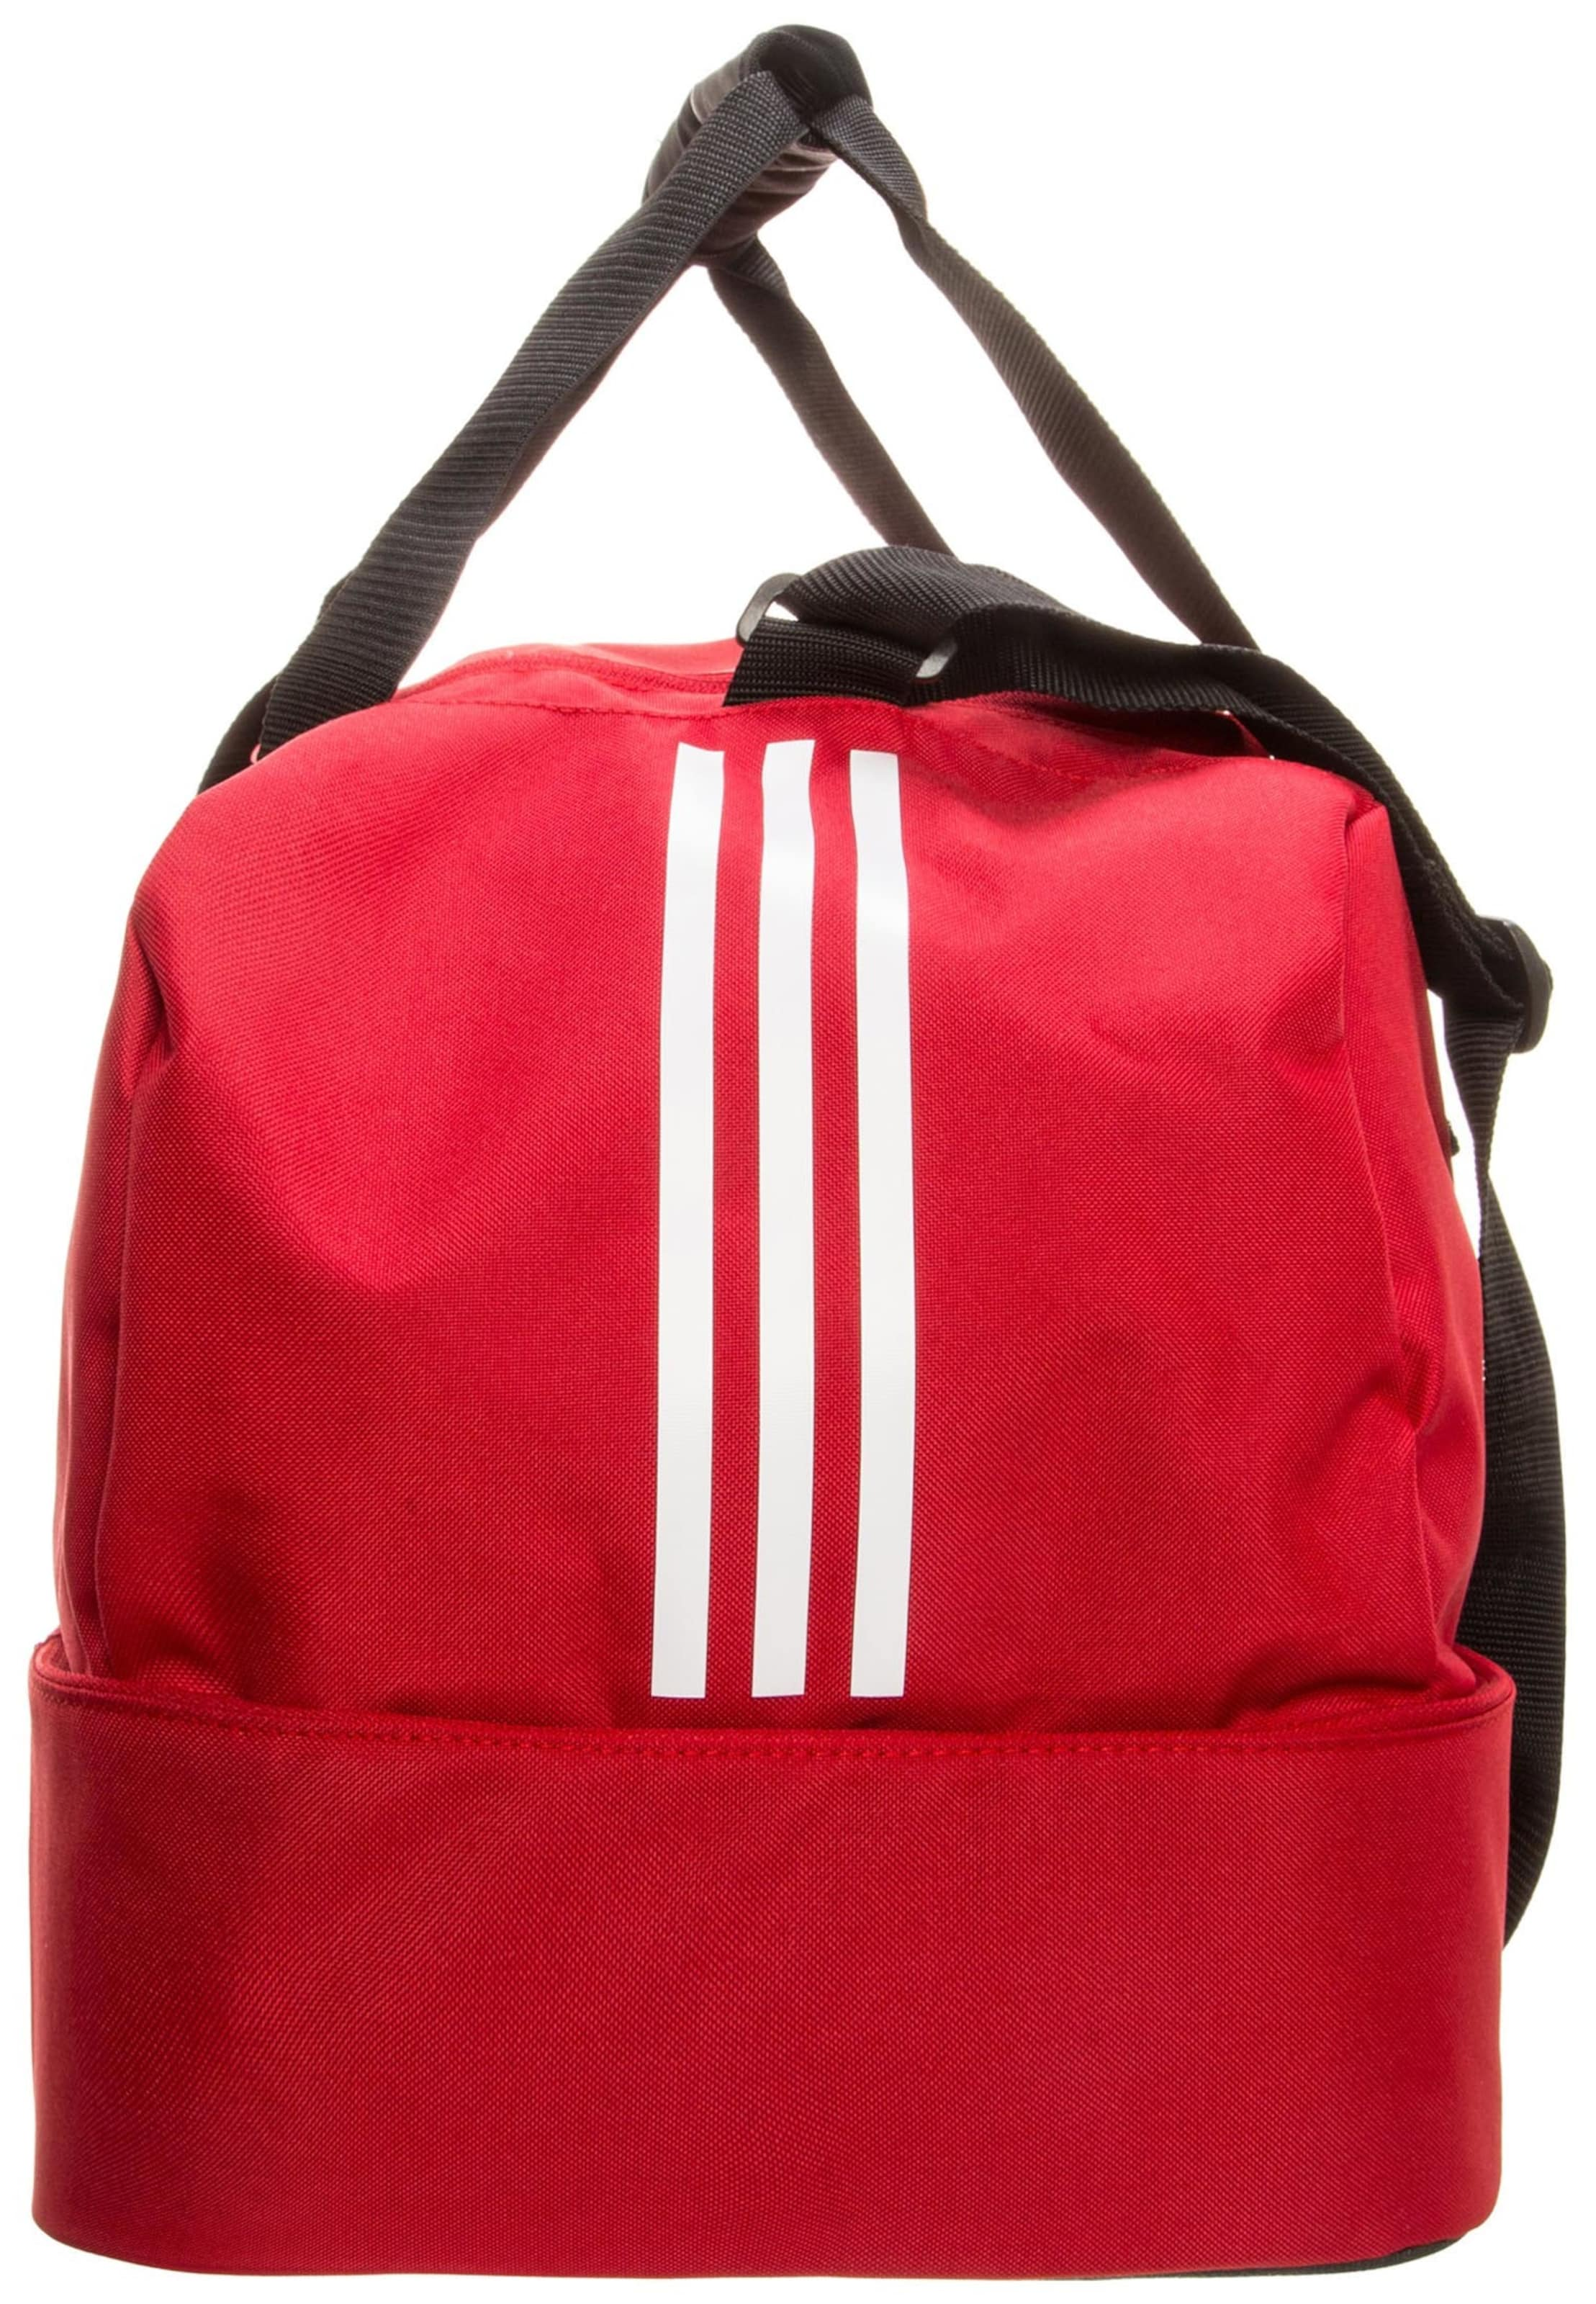 Performance 'tiro Adidas Sac RougeNoir Sport Bottom En De Compartment' Blanc cFKJTl13